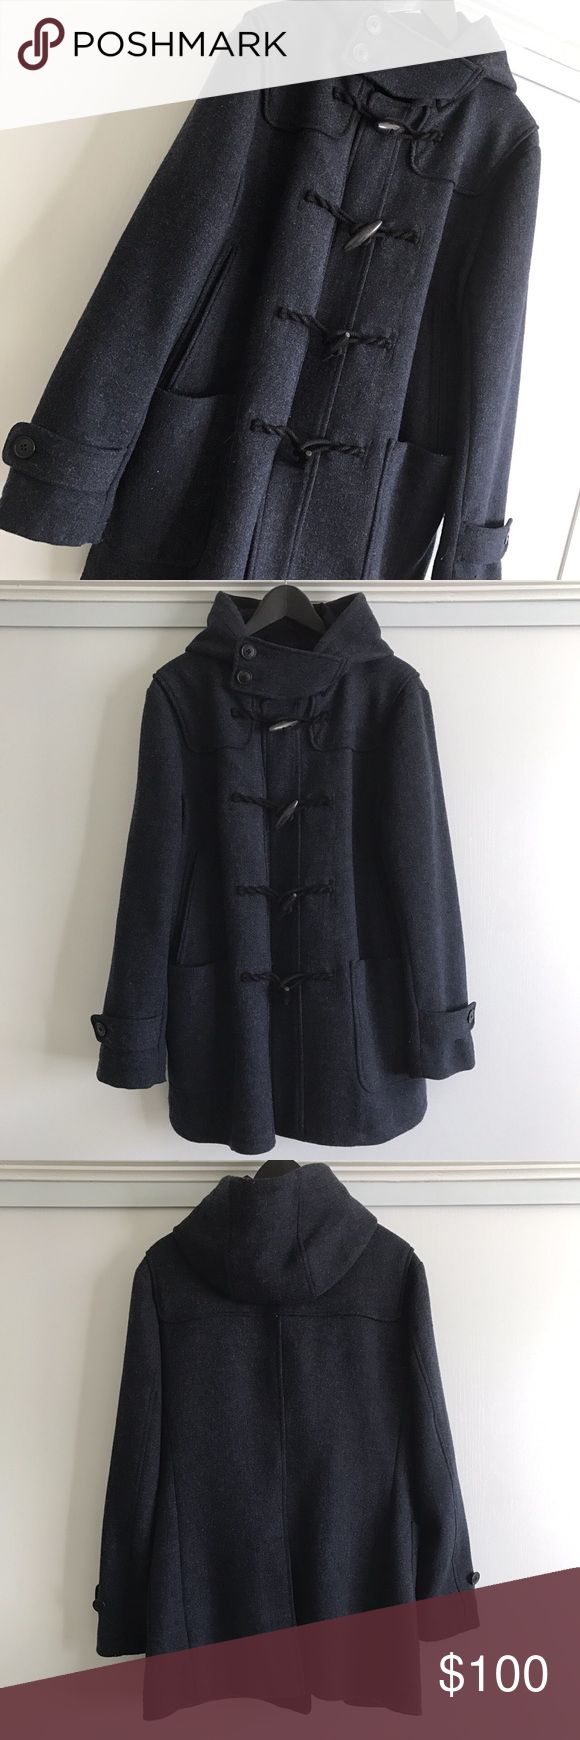 Limited Jill Sander UNIQLO Coat size M This coat is very limited item of UNIQLO x Jill Sander. Worned few times. Conditon is Very Good (9/10) !! Length : 32in / Chest : 21in / Sleeve : 24in (size M) Uniqlo Jackets & Coats Pea Coats